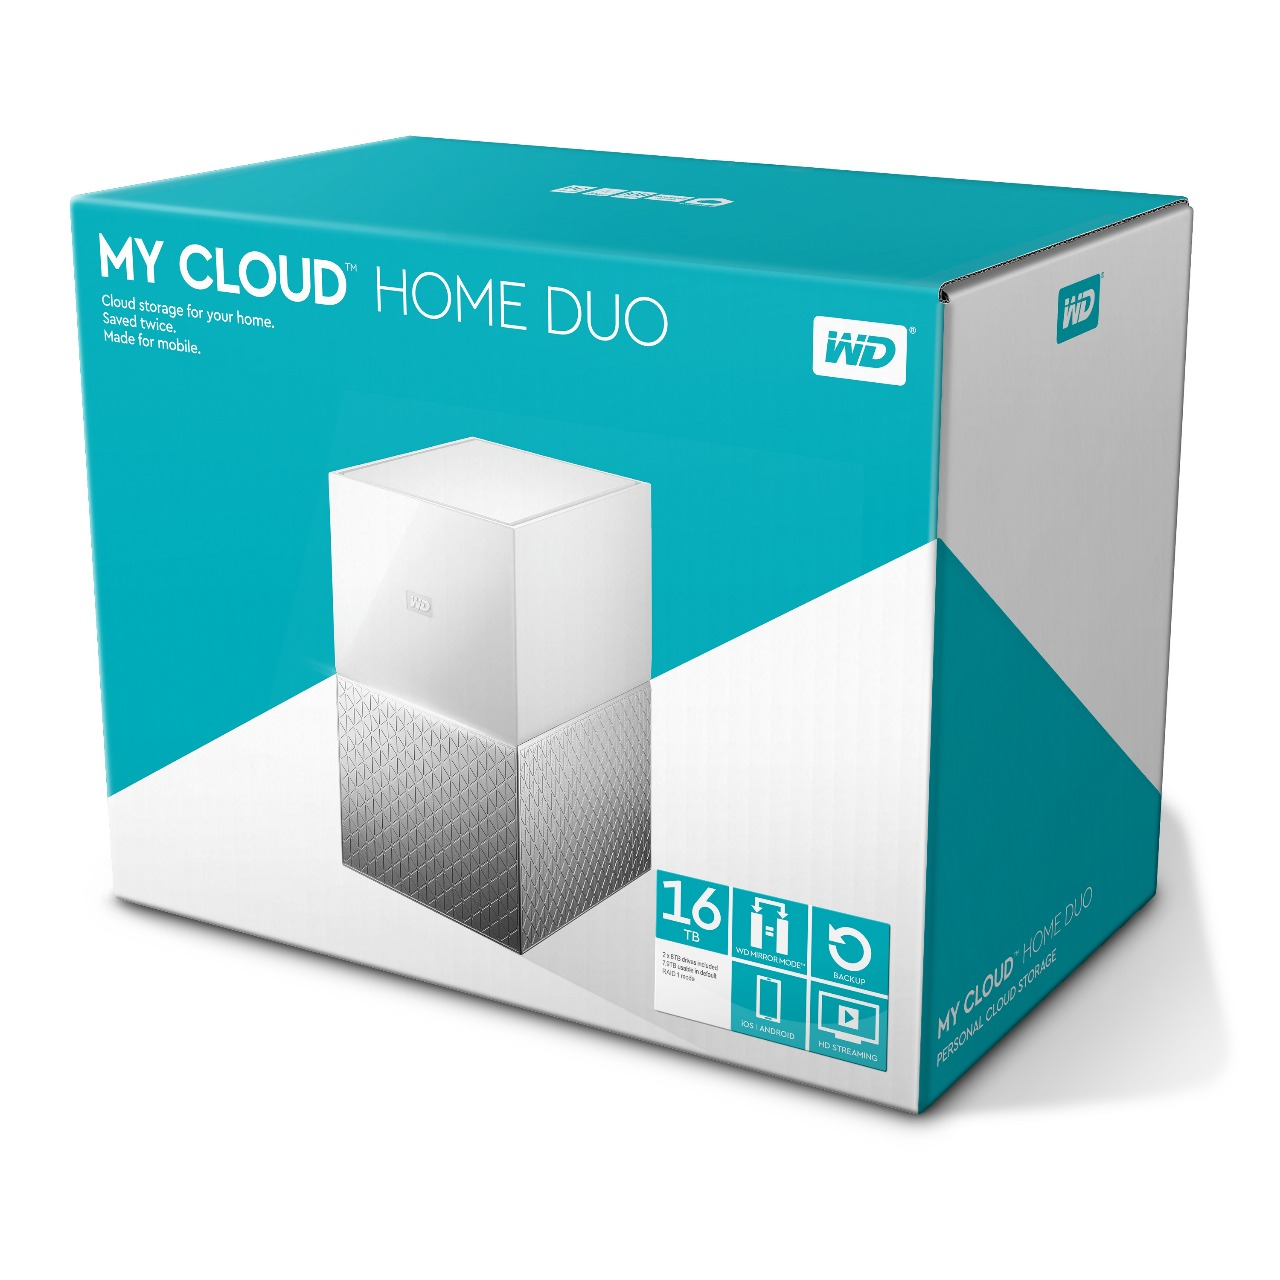 LAMPUNG POST | Western Digital Luncurkan My Cloud Home